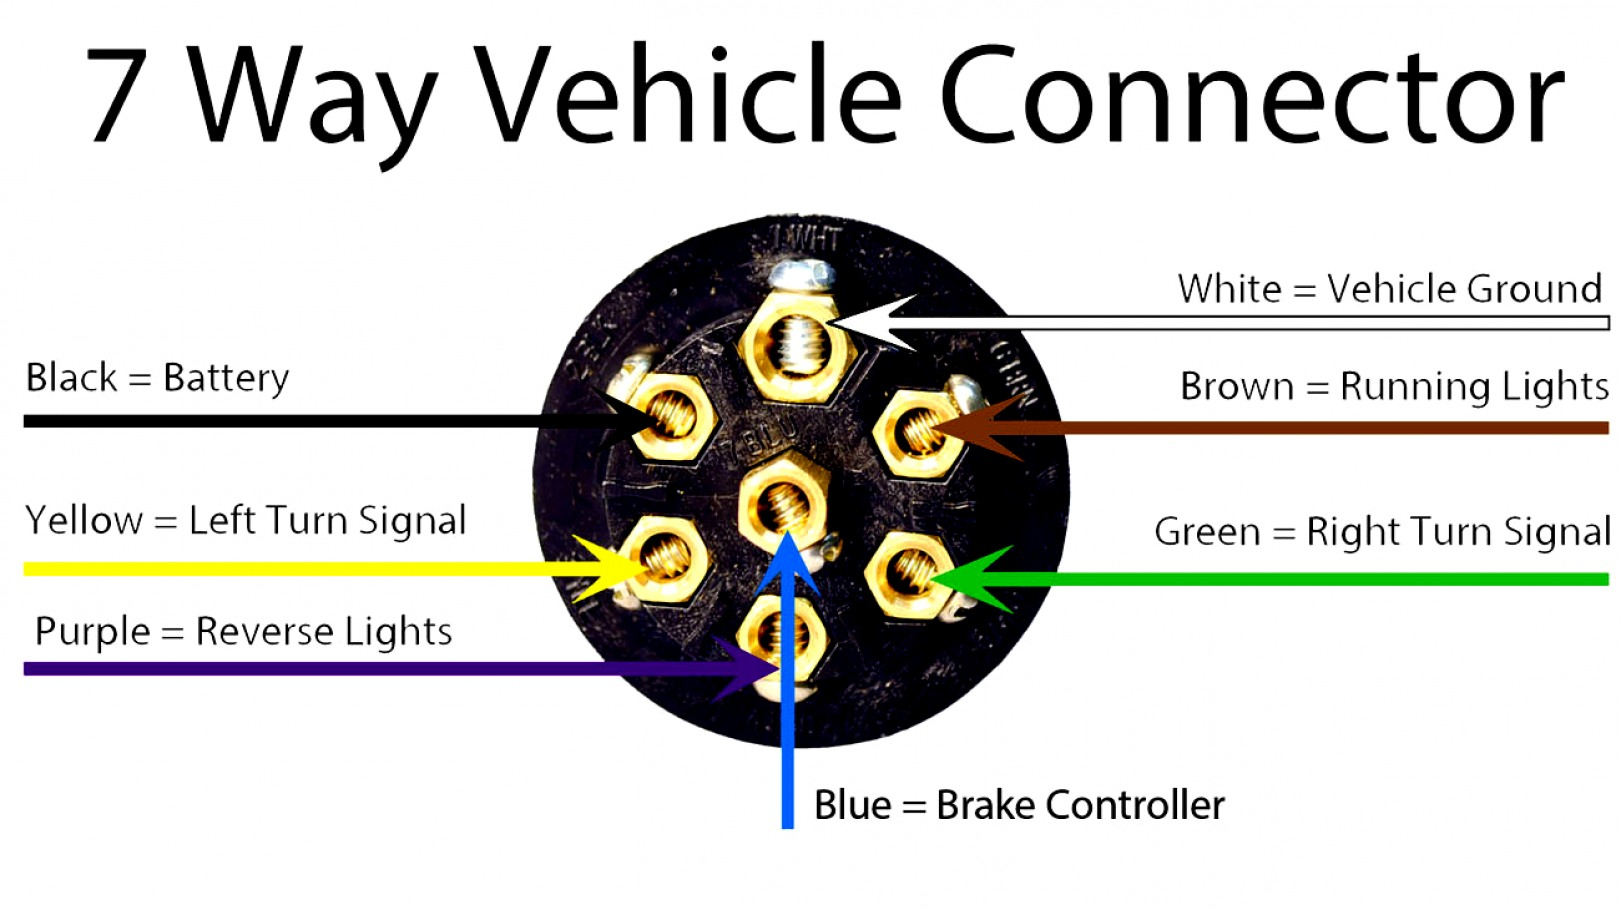 6 Pin Vehicle Plug Wiring Diagram | Wiring Diagram - Utilux Trailer Wiring Diagram